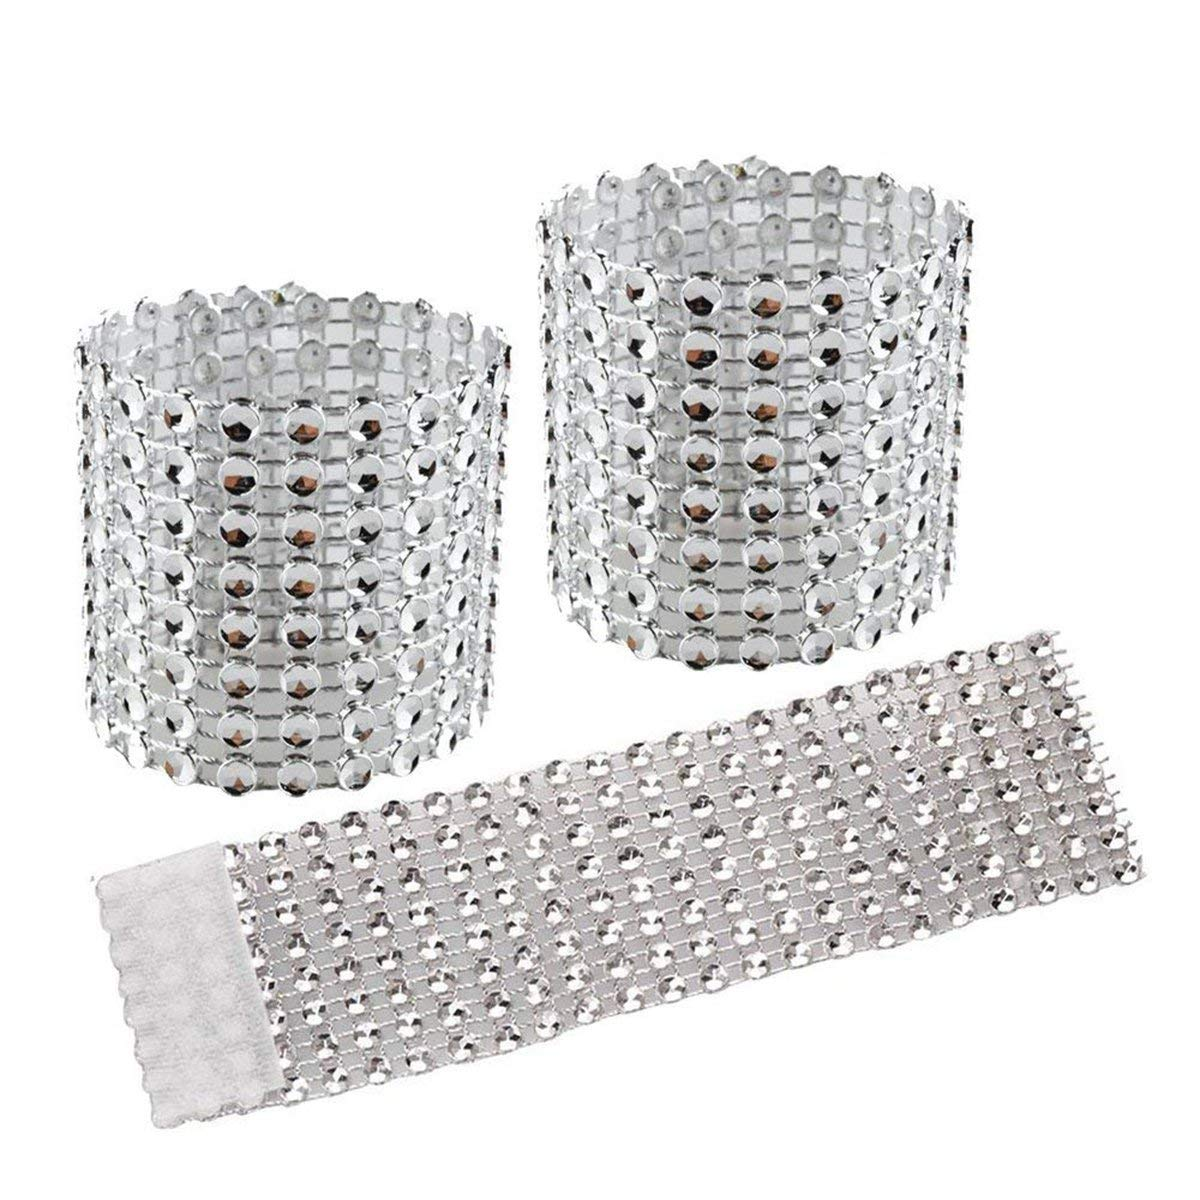 50 Piece Silver Elina Home Plastic Rhinestone Napkin Rings Cum Holder for Chairs Sash Bows Banquet Wedding Birthday Party Decor